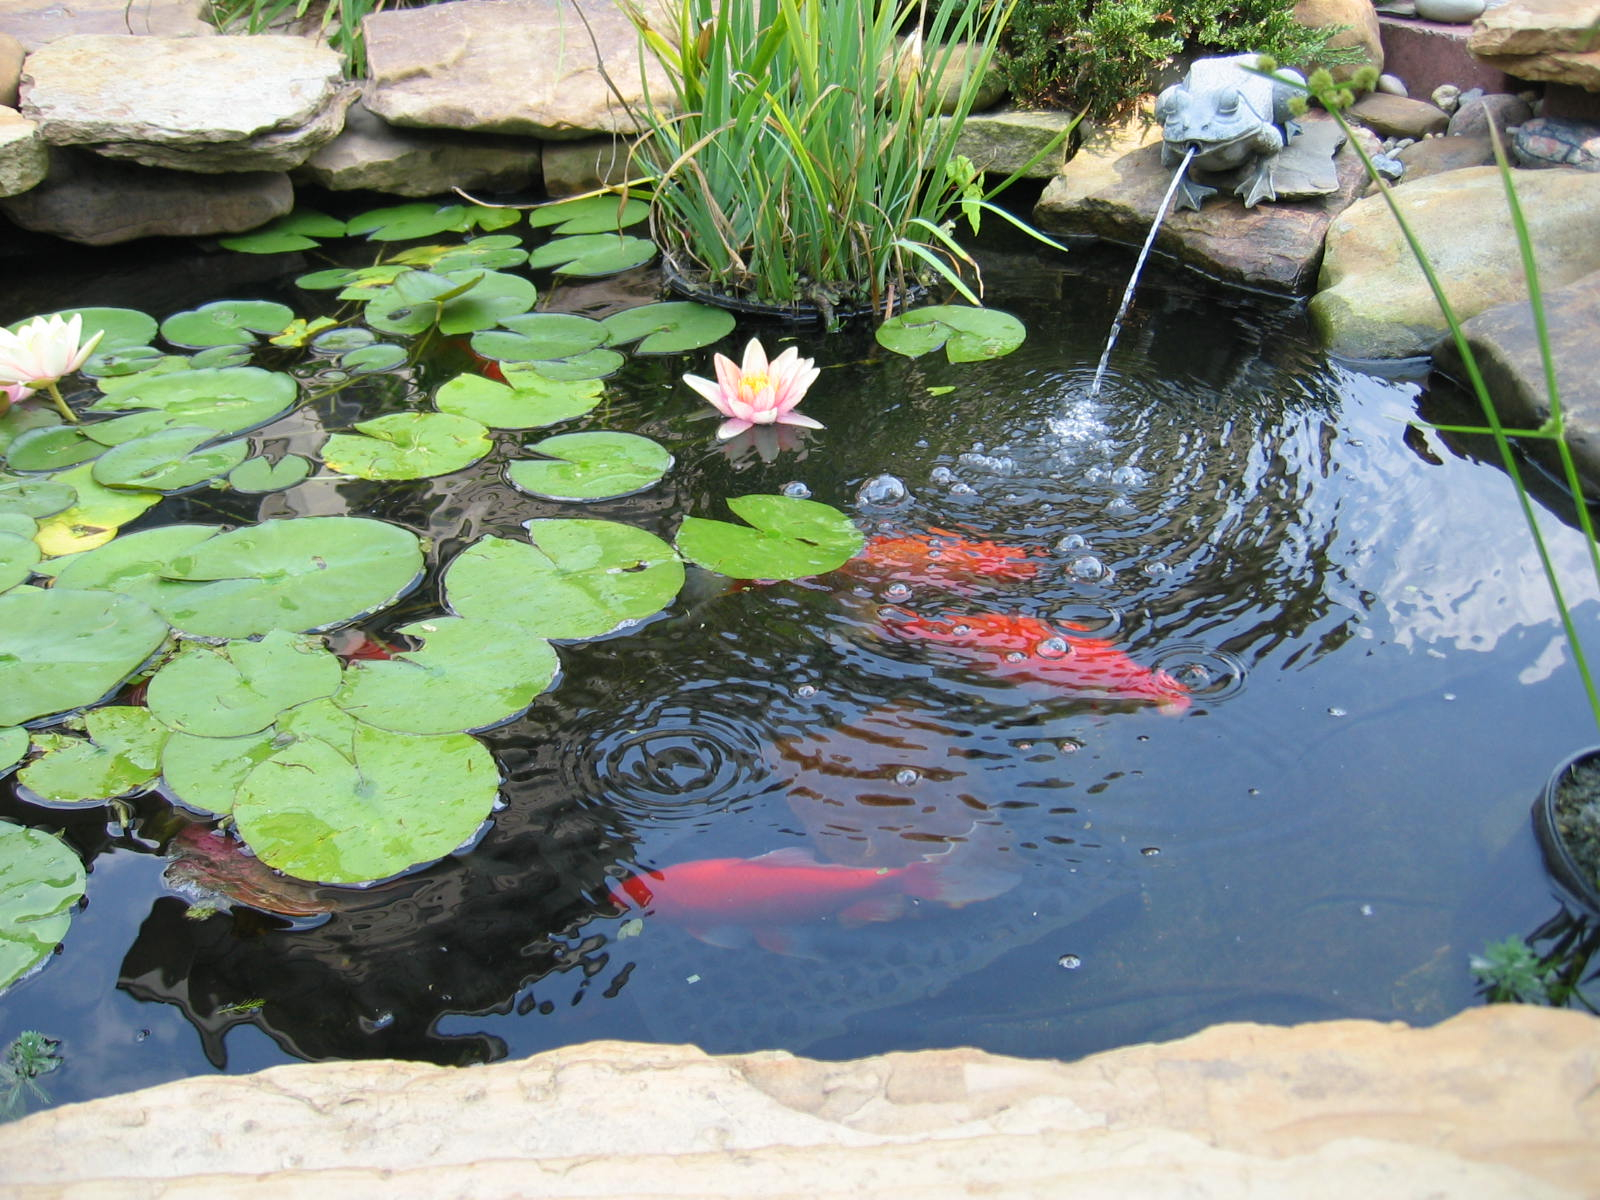 Delightful Backyard Fish Pond Landscape Design With Small Water pertaining to 14 Genius Concepts of How to Upgrade Small Backyard Pond Ideas